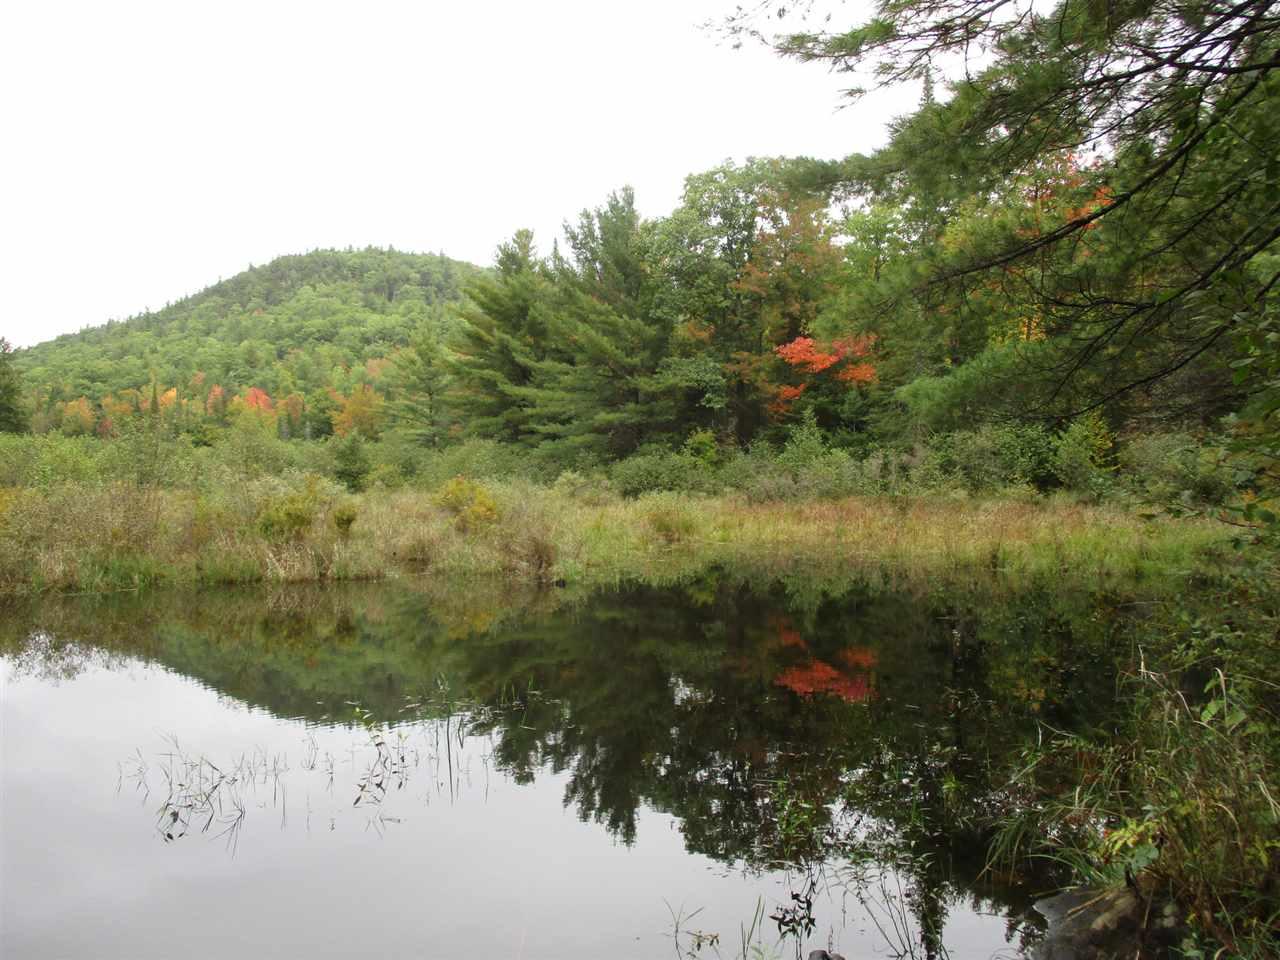 Keeseville image 1